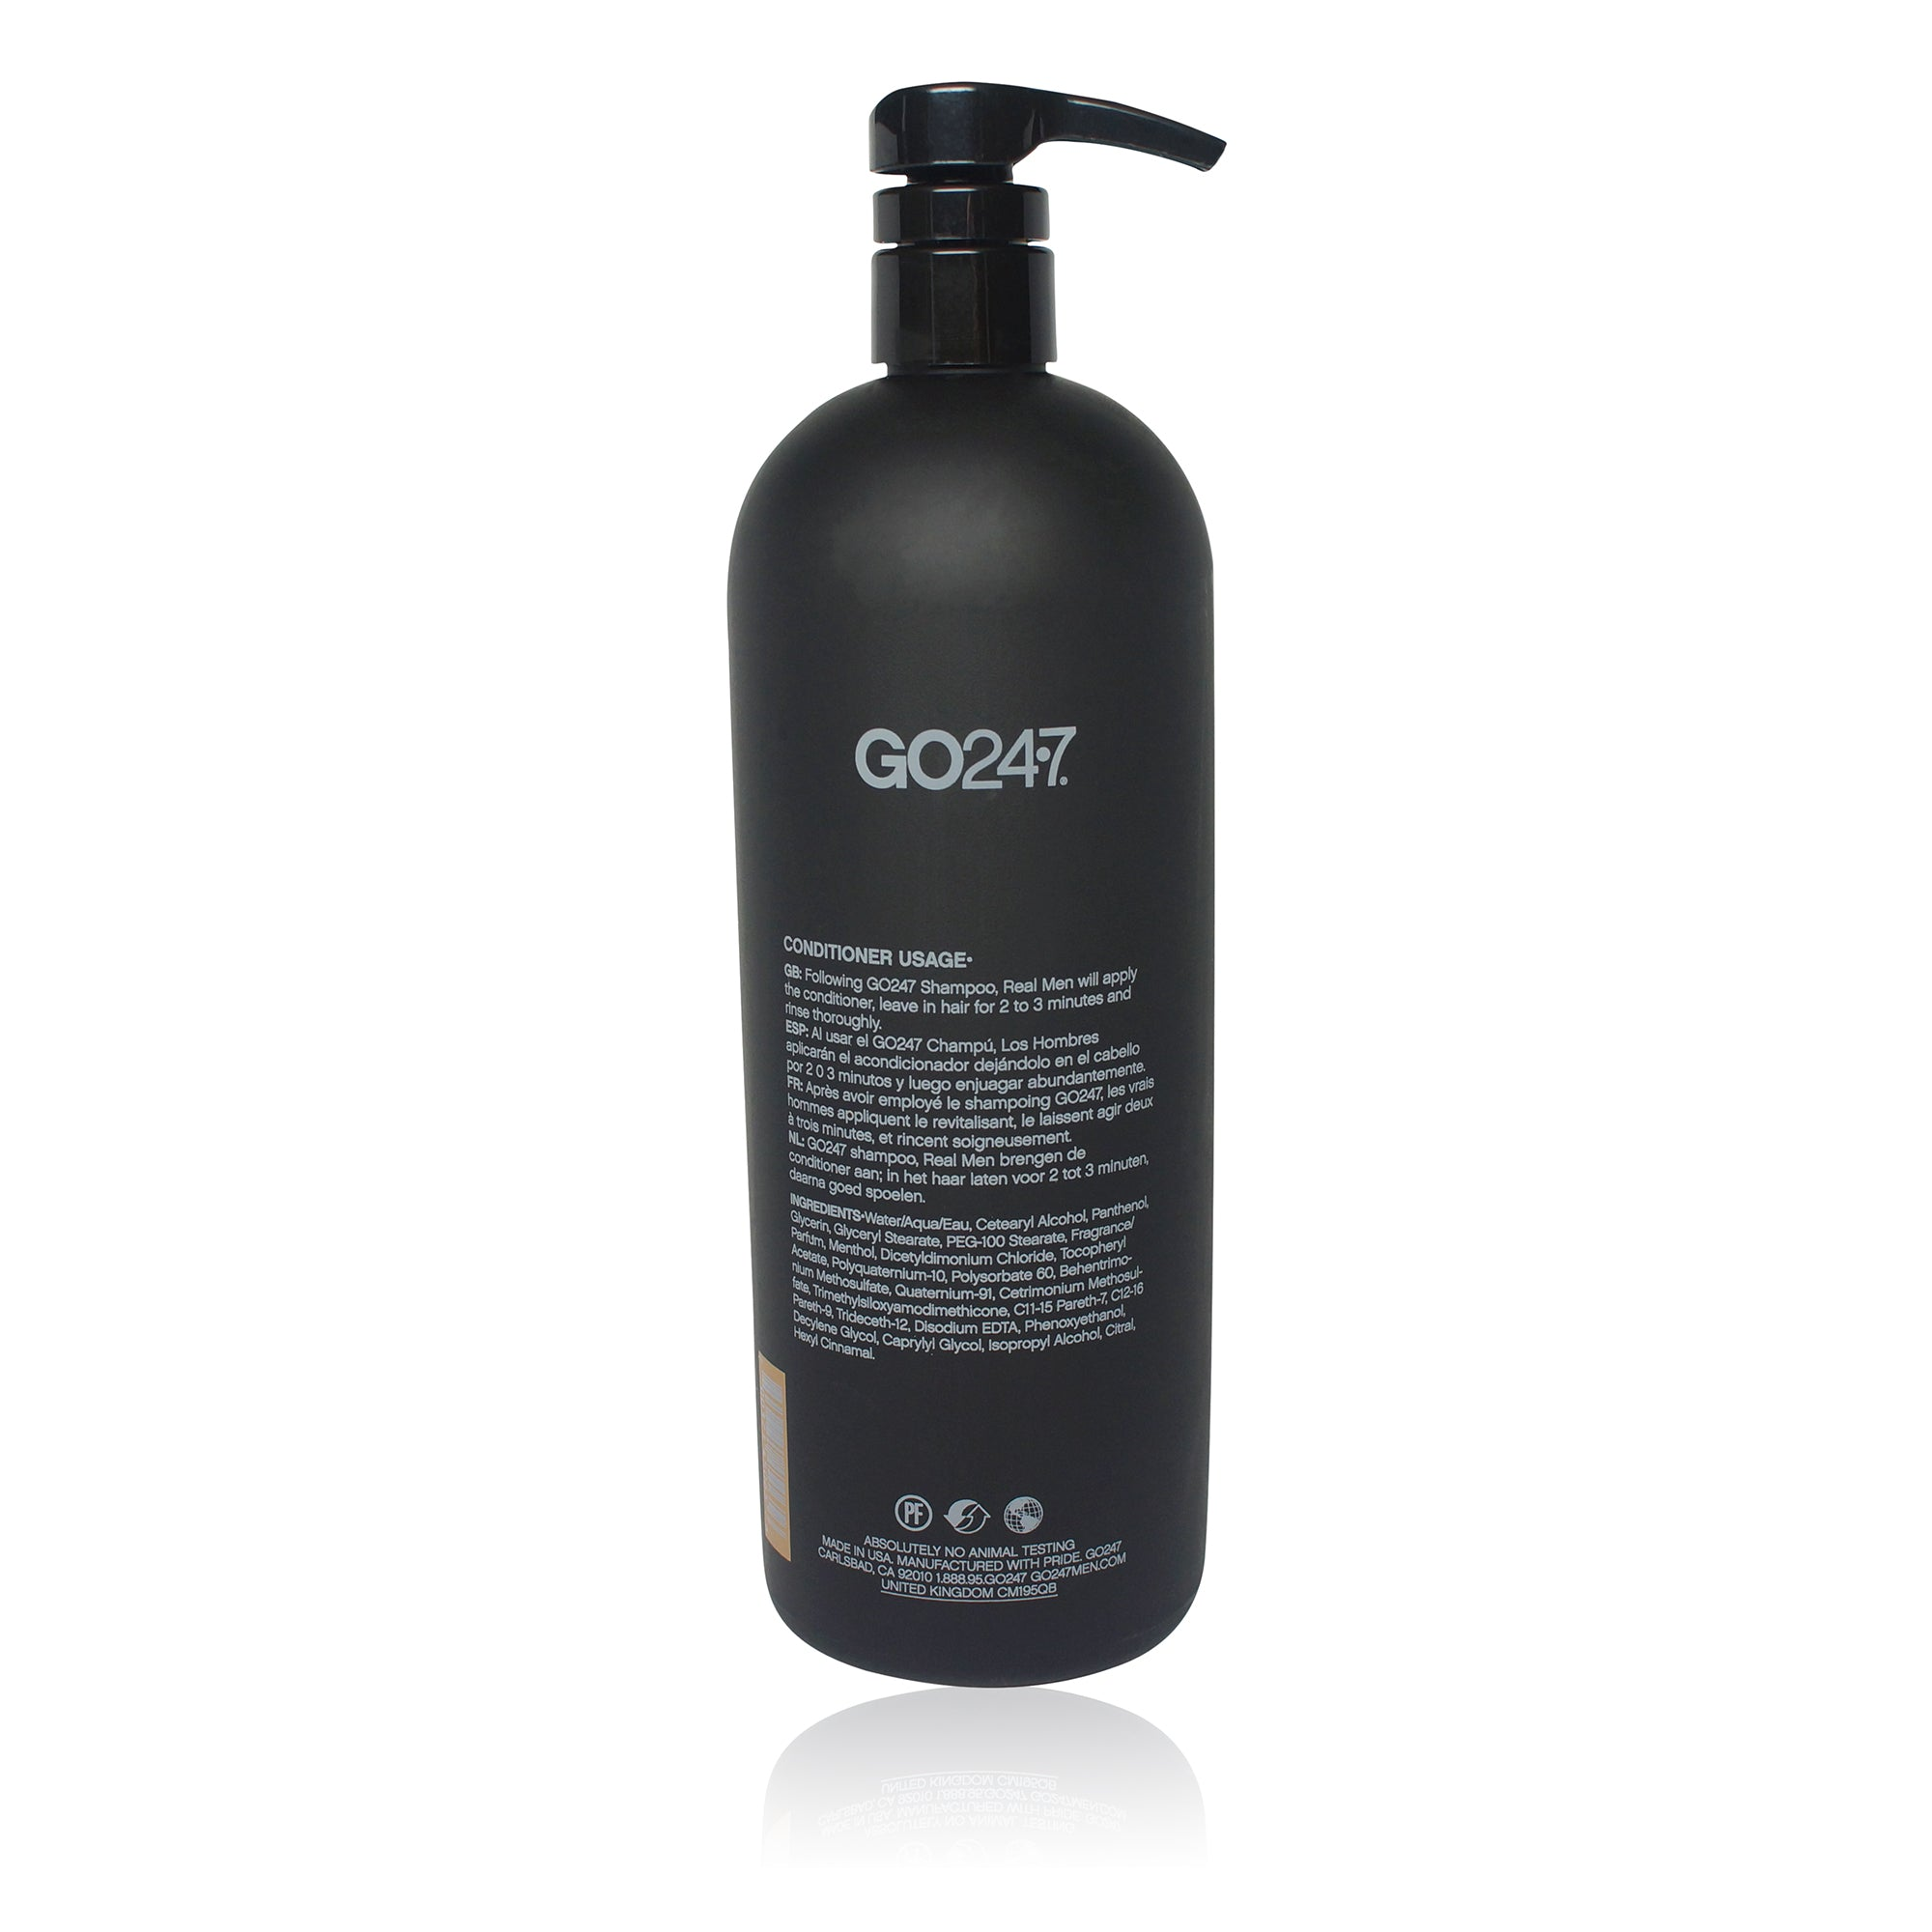 GO247 Real Men Conditioner 33.8 oz.